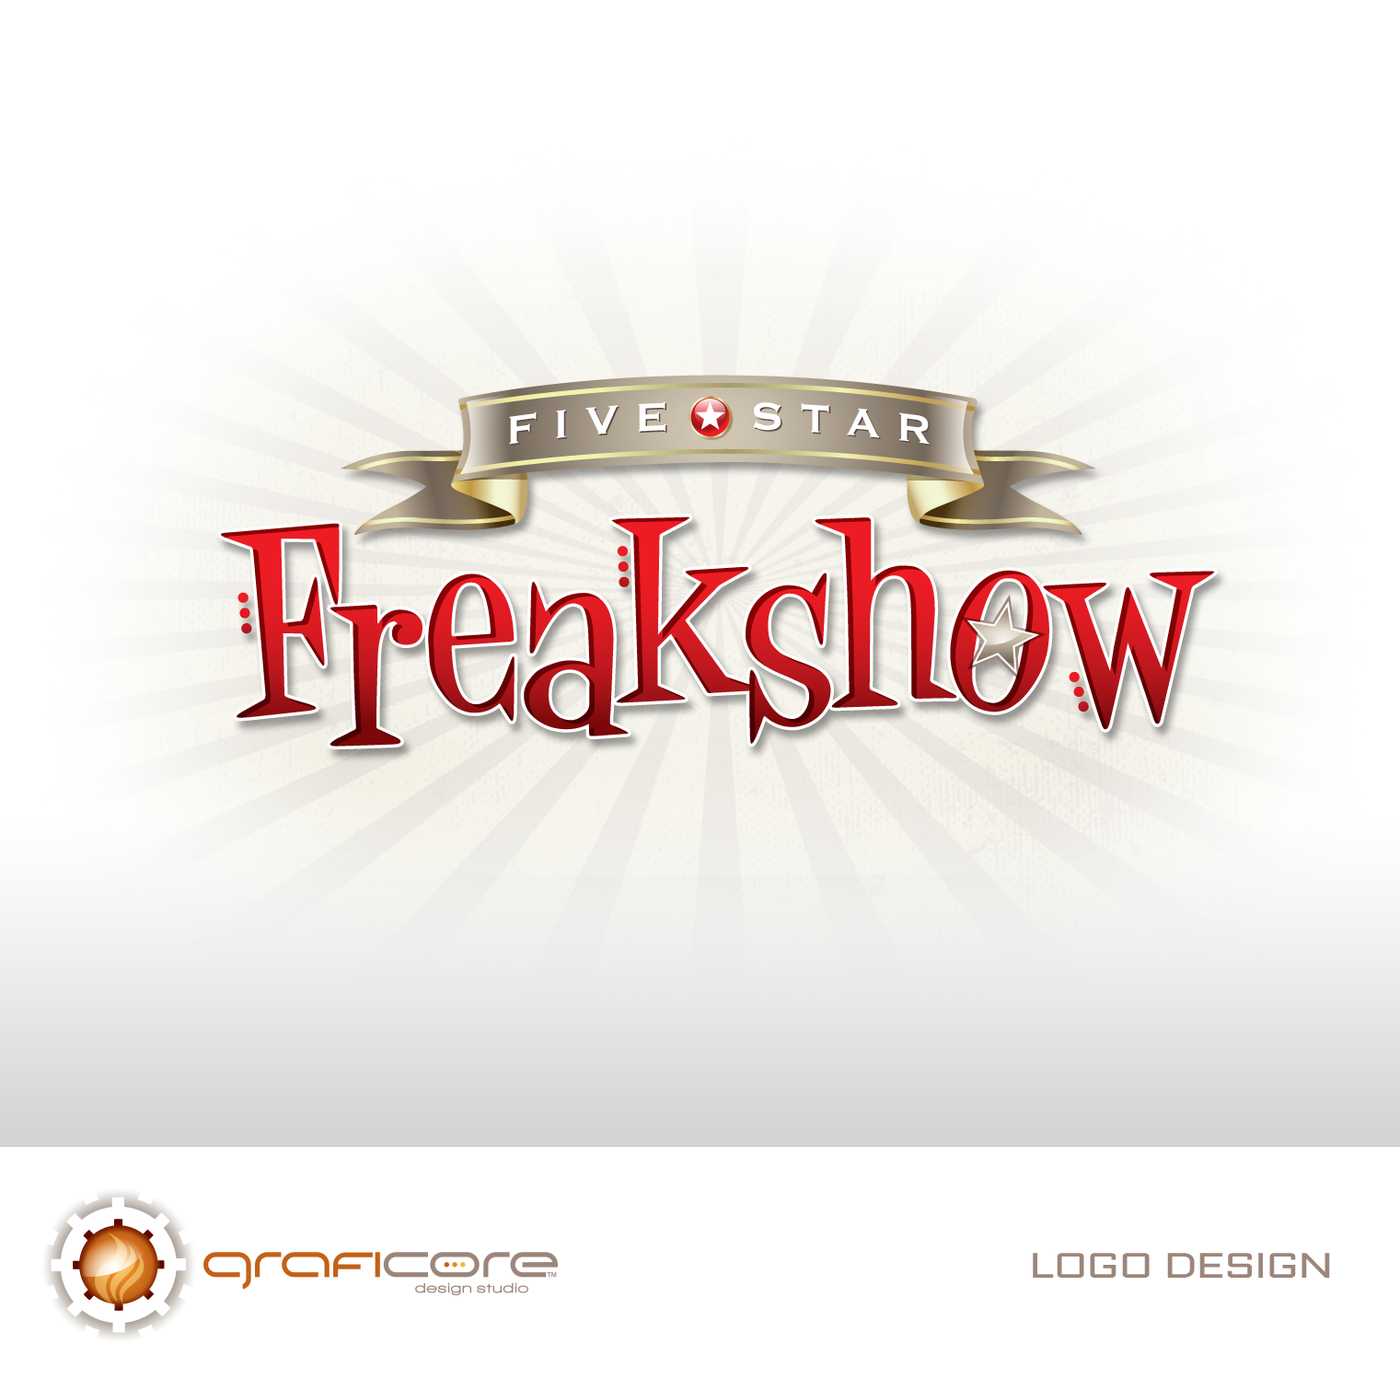 Five Star Freakshow / Logo by Jim Lodise at Coroflot.com.